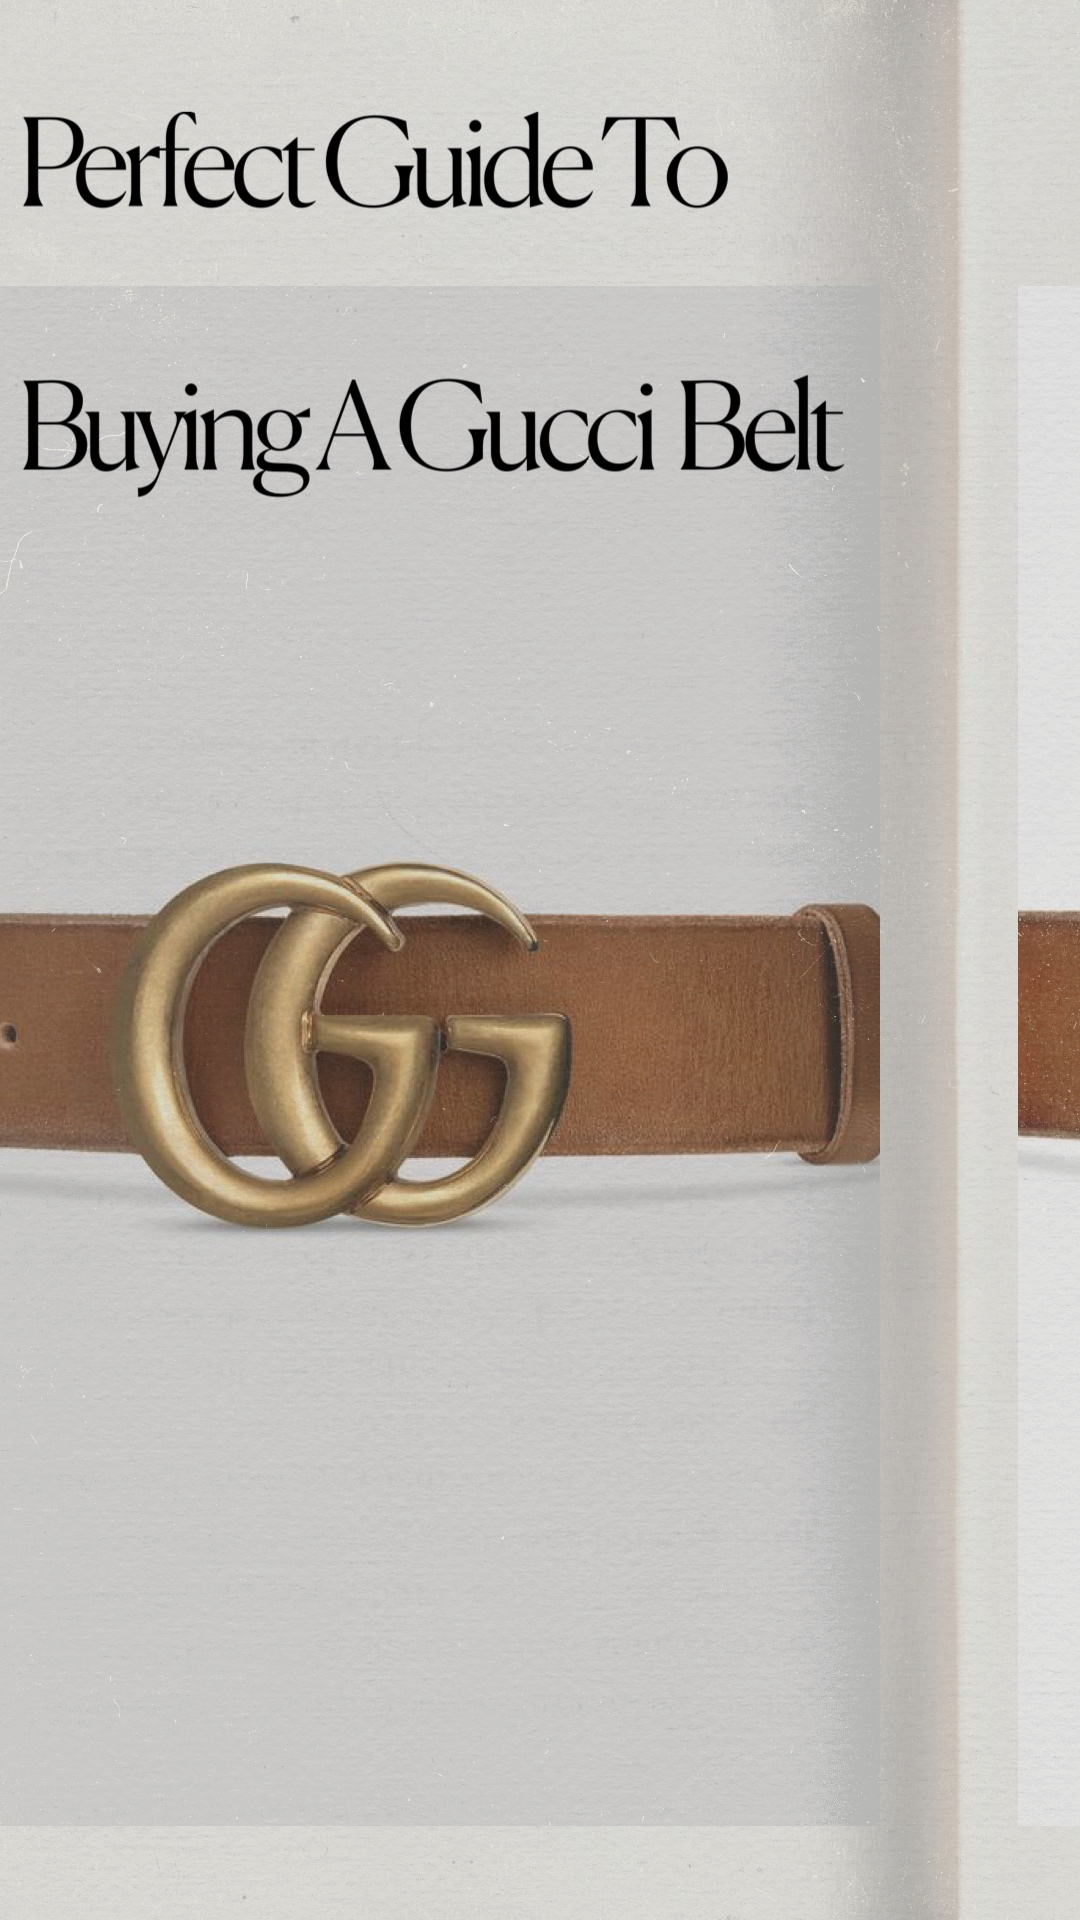 The Perfect Guide To Buying A Gucci Belt